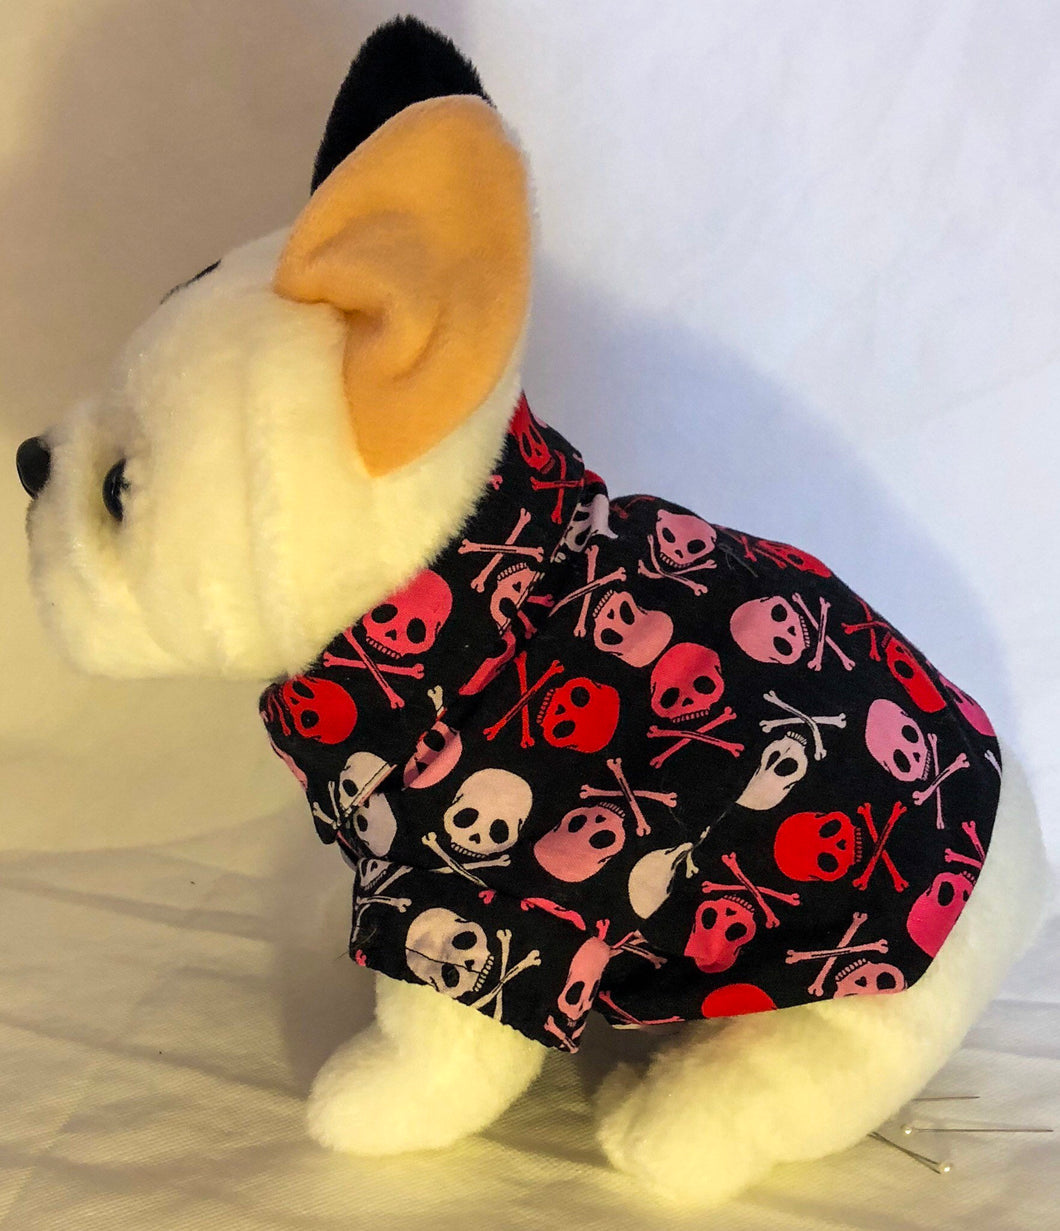 Rebel x Princess 2018: Small - XXL dog rockabilly luau party pirate shirt with red, white, pink skull & crossbones on black